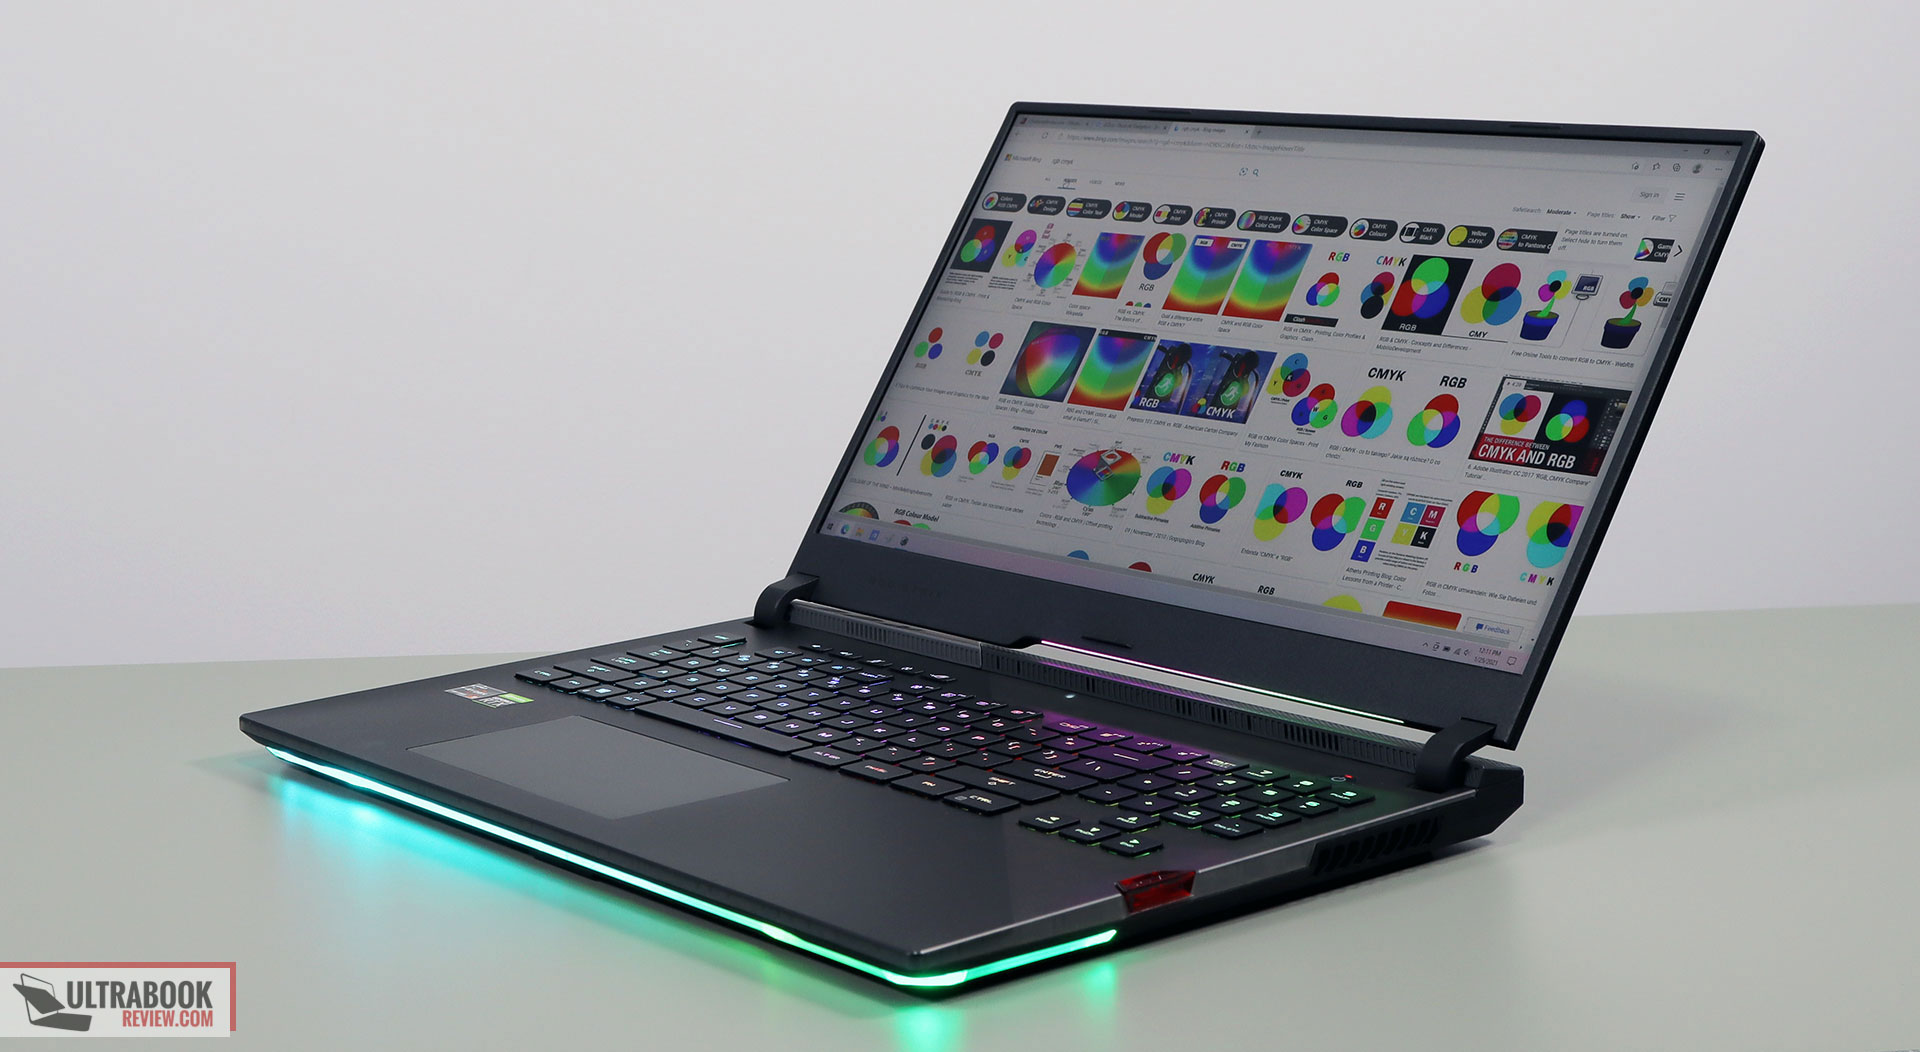 2021 Asus ROG Strix Scar 17 review